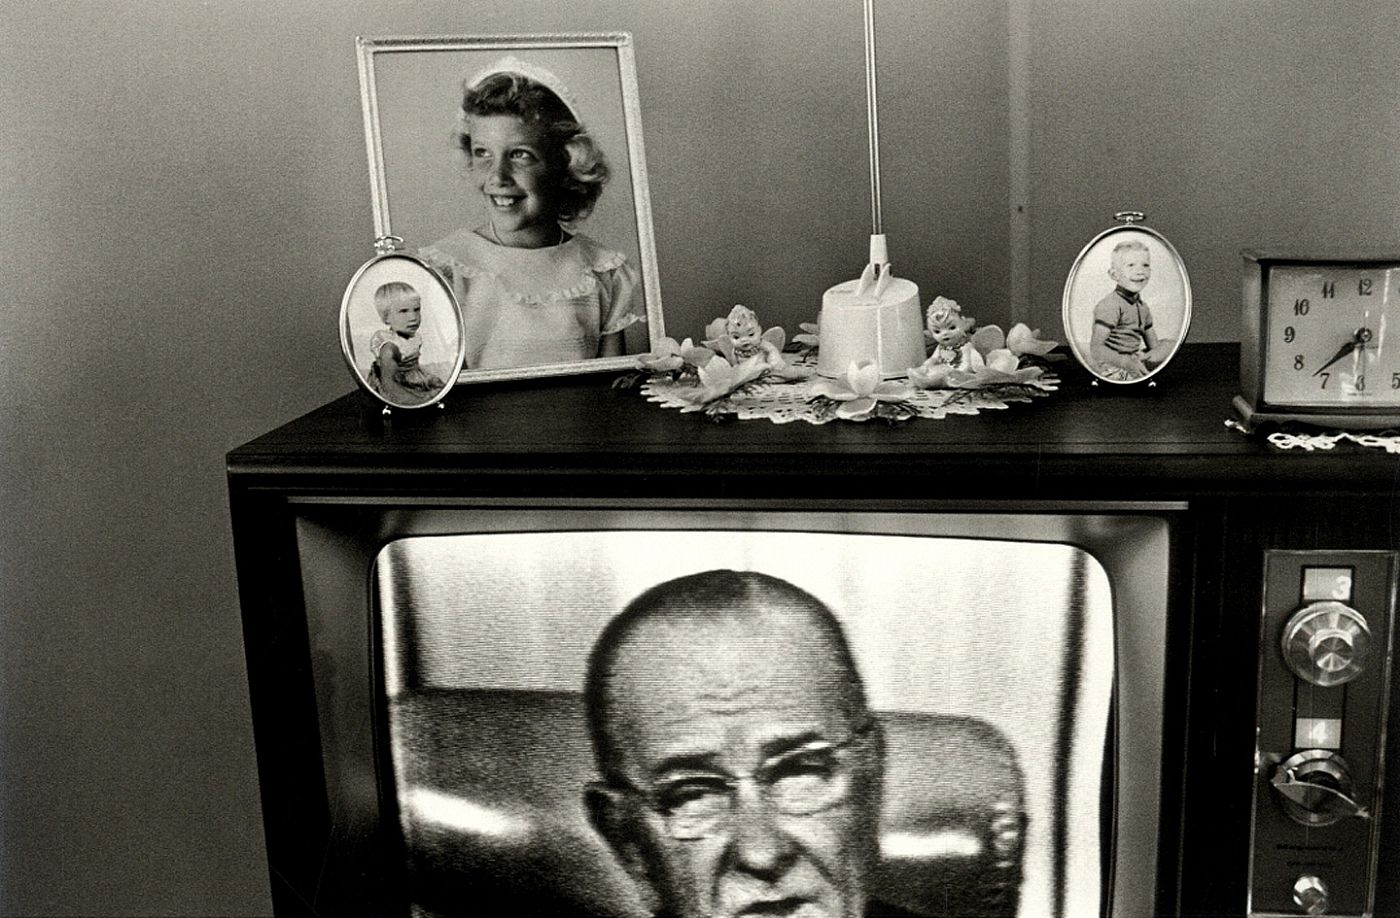 Lee Friedlander: The Little Screens [SIGNED]